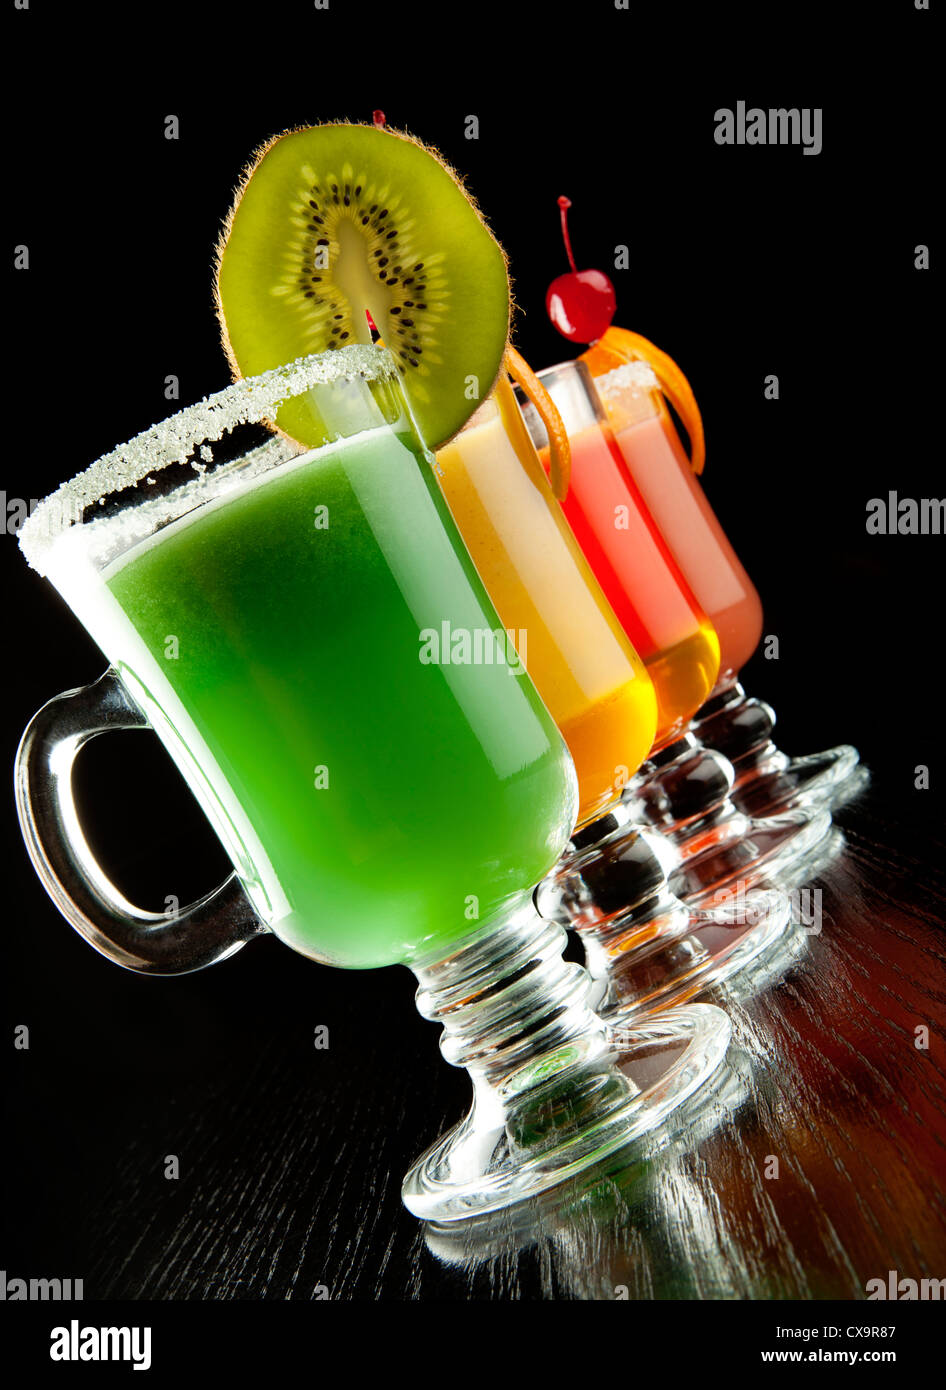 Group of four wine glasses with colored alcoholic cocktails, decorated with fruit and sugar on black bar counter - Stock Image